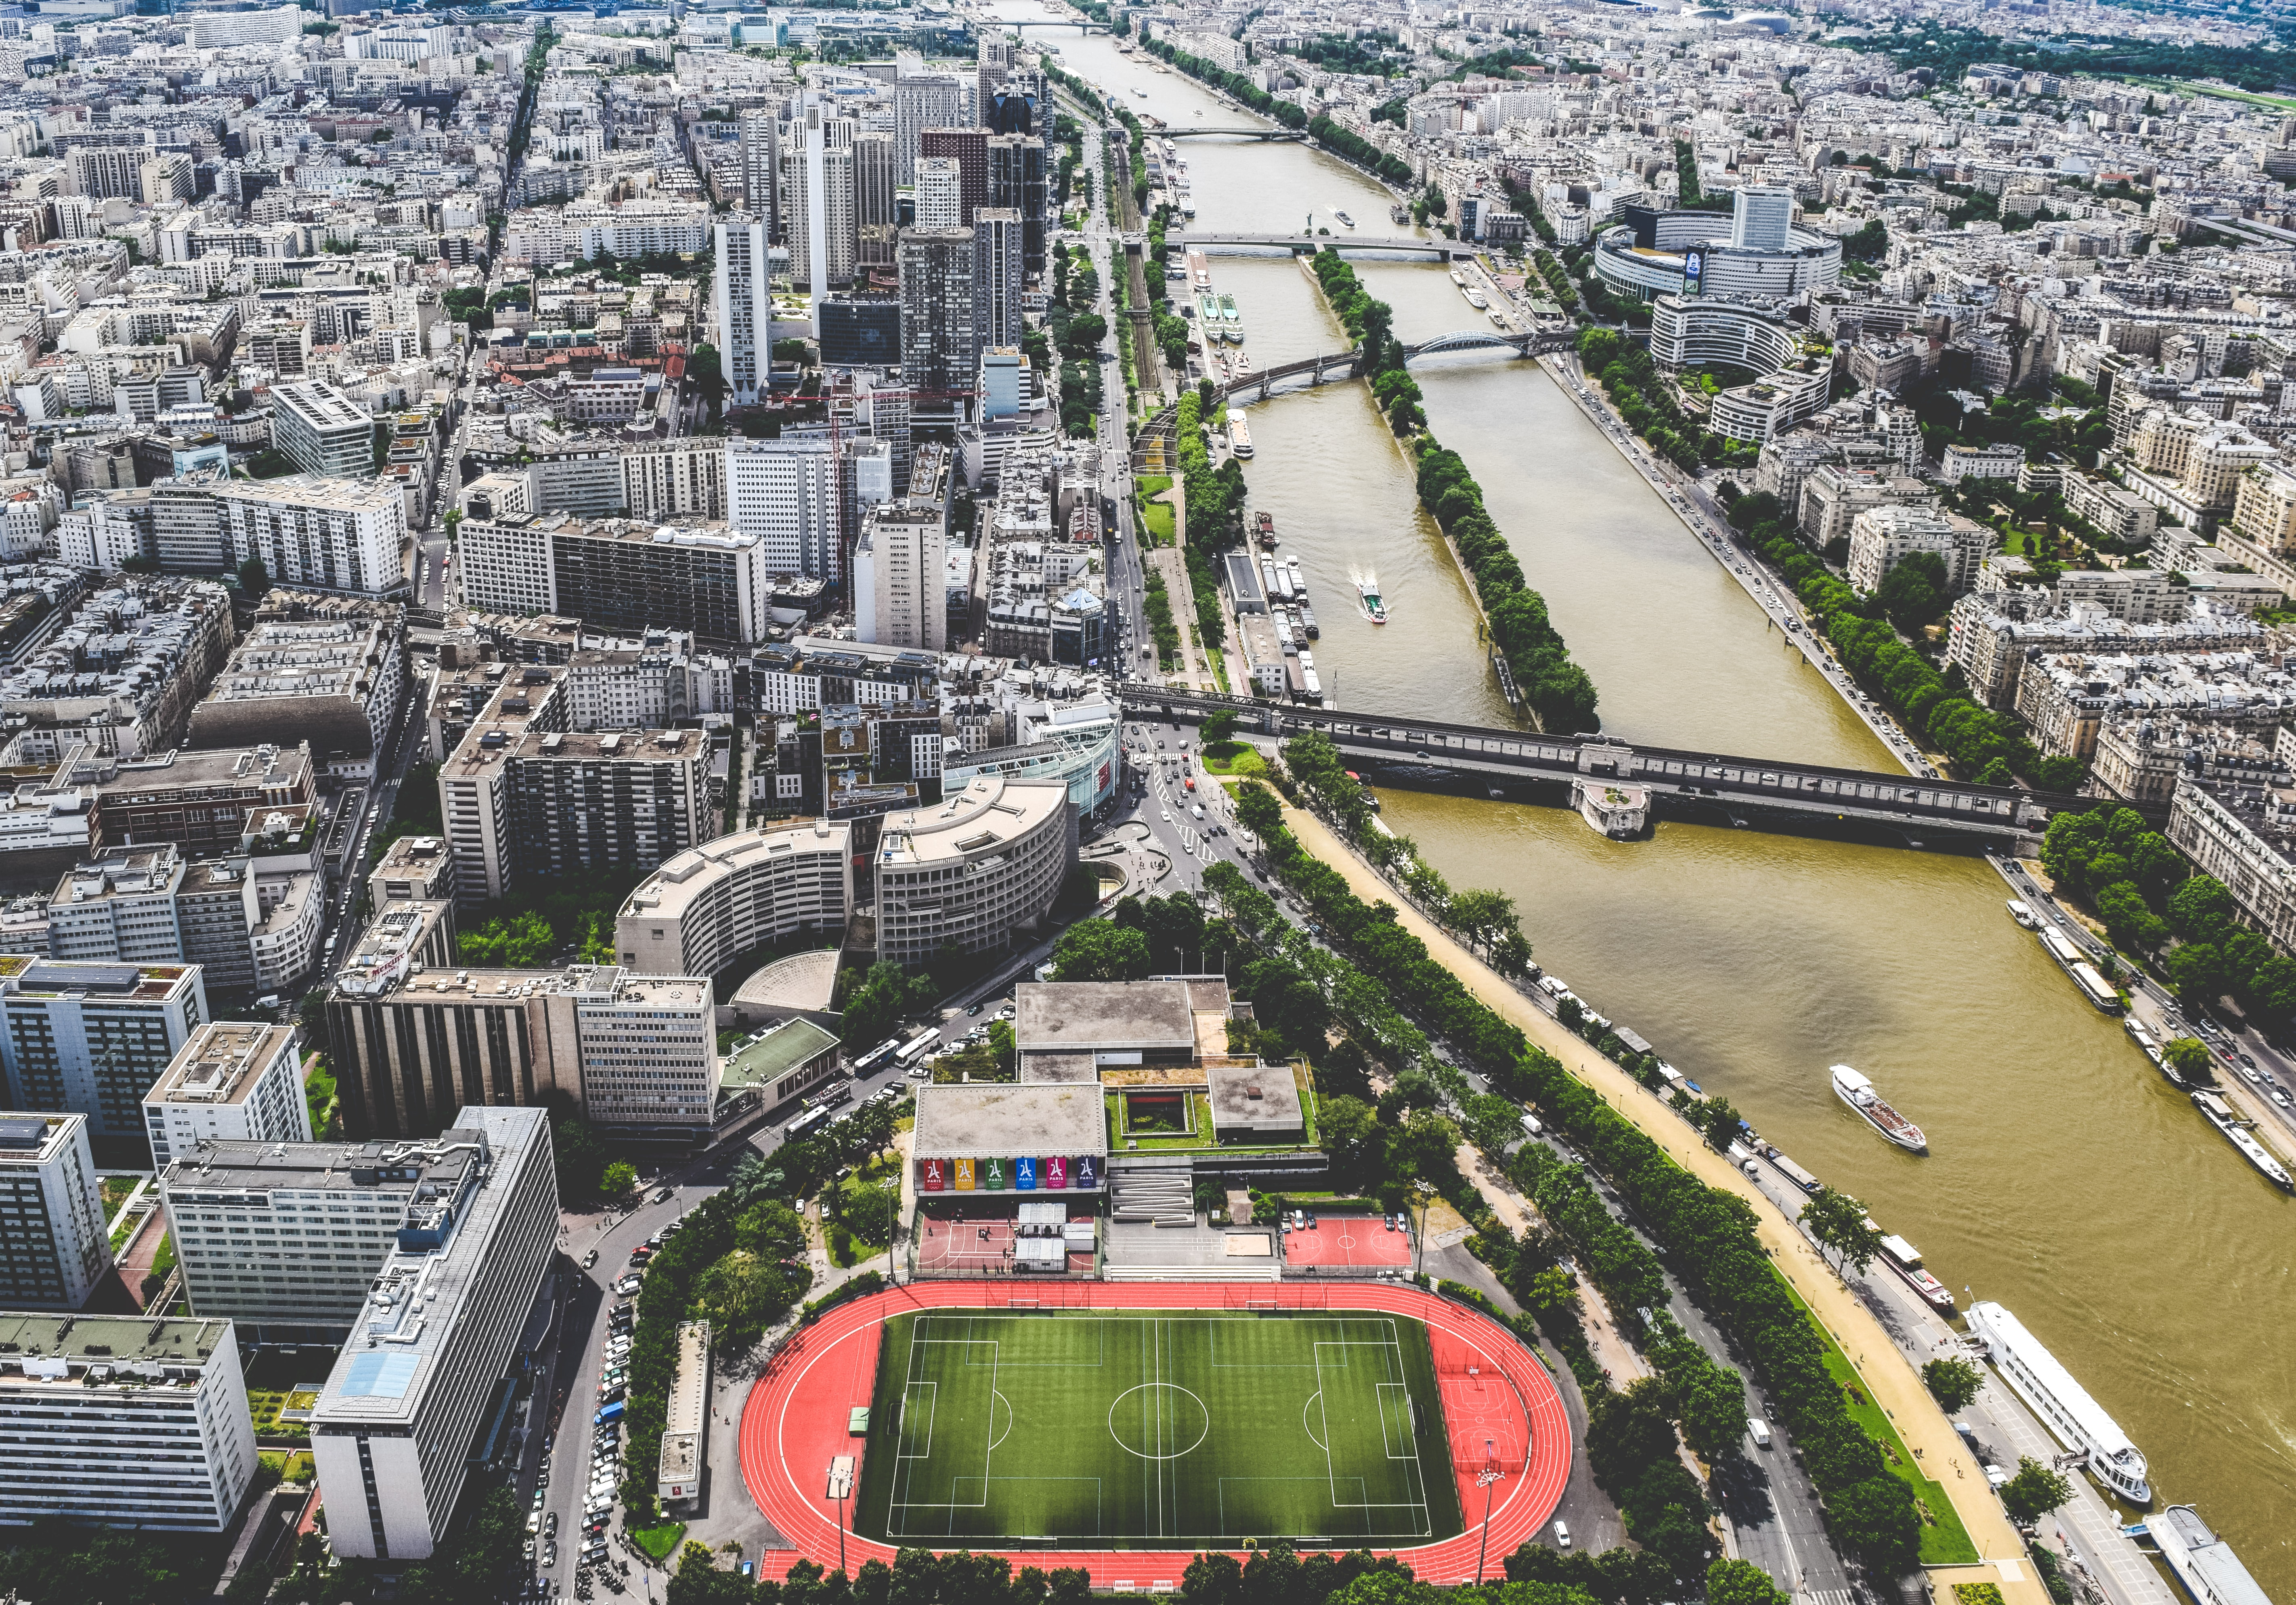 Drone shot of Paris showing skyscrapers, a soccer and track field, and boats on river Seine